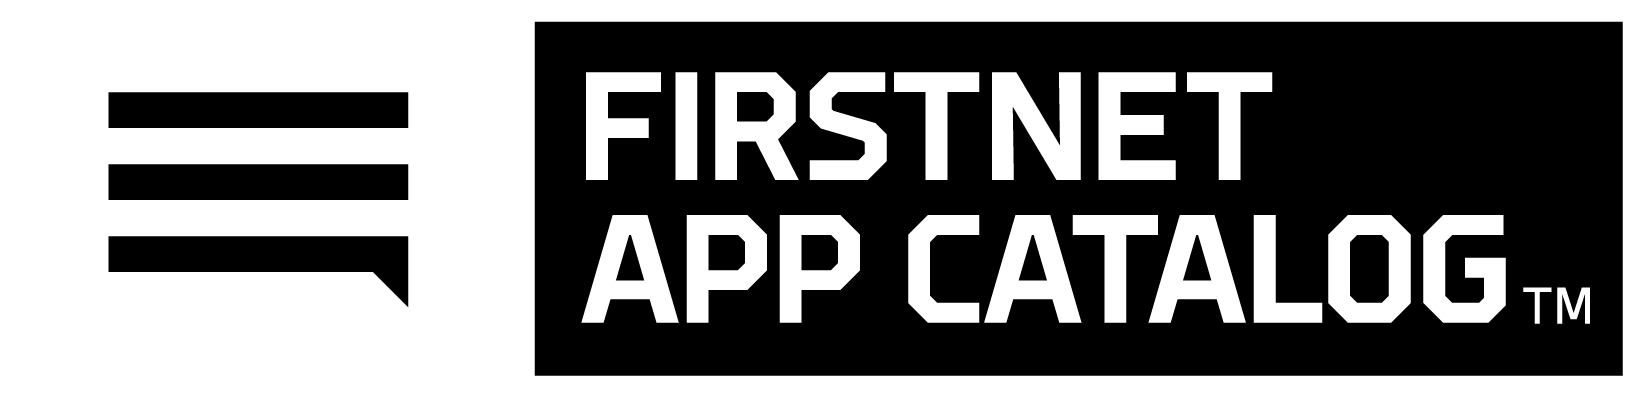 FirstNet App Catalog Badge